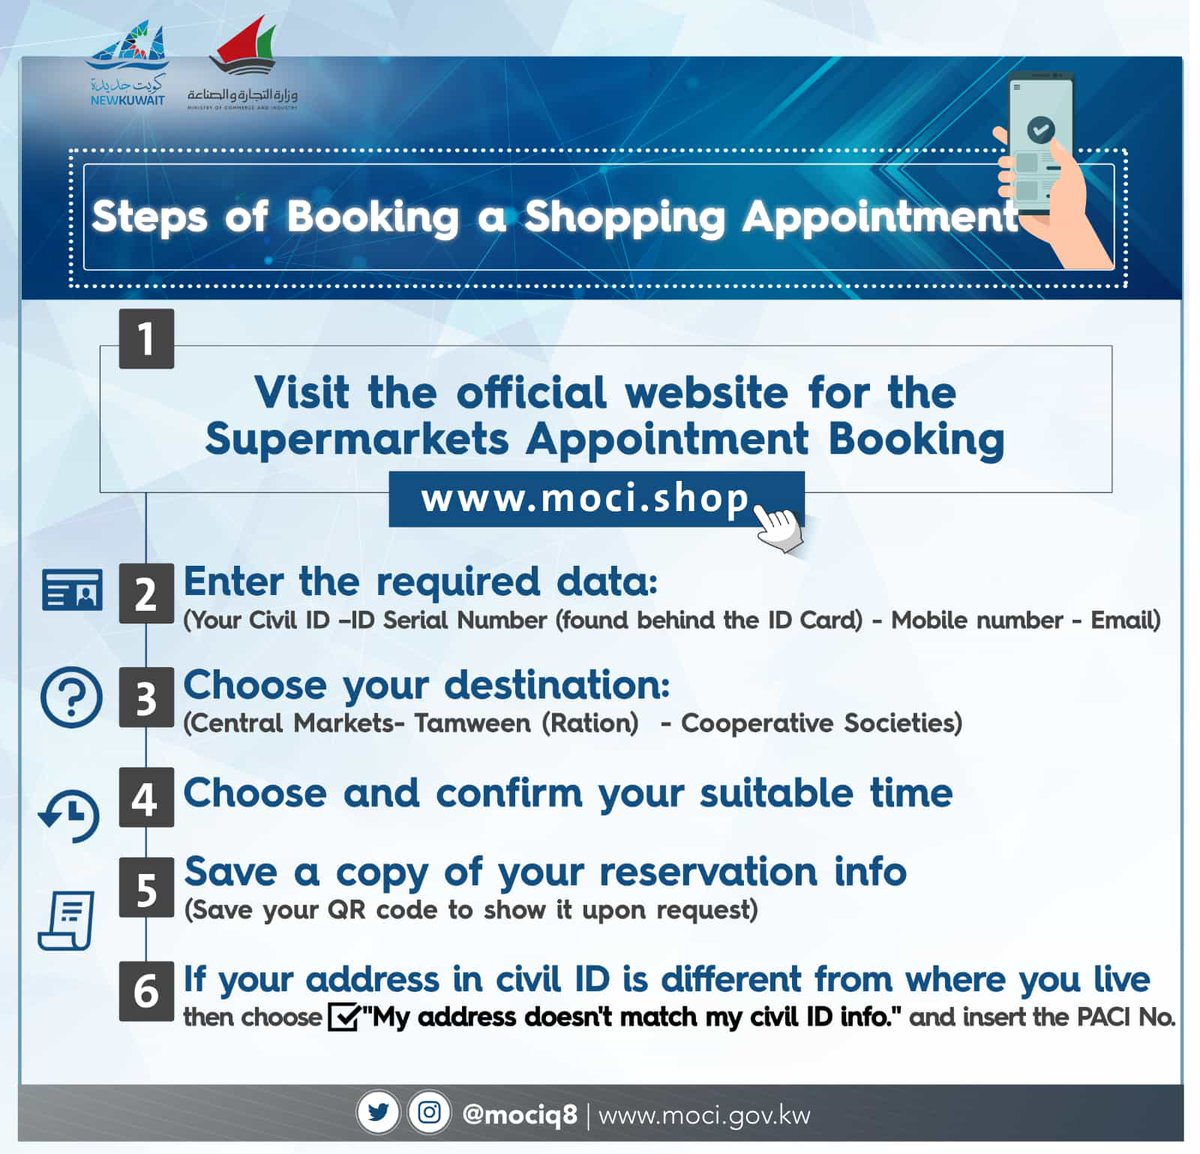 Steps to book your supermarket appointment on https://t.co/RF3fOhlAny https://t.co/EqqTsNCAsU